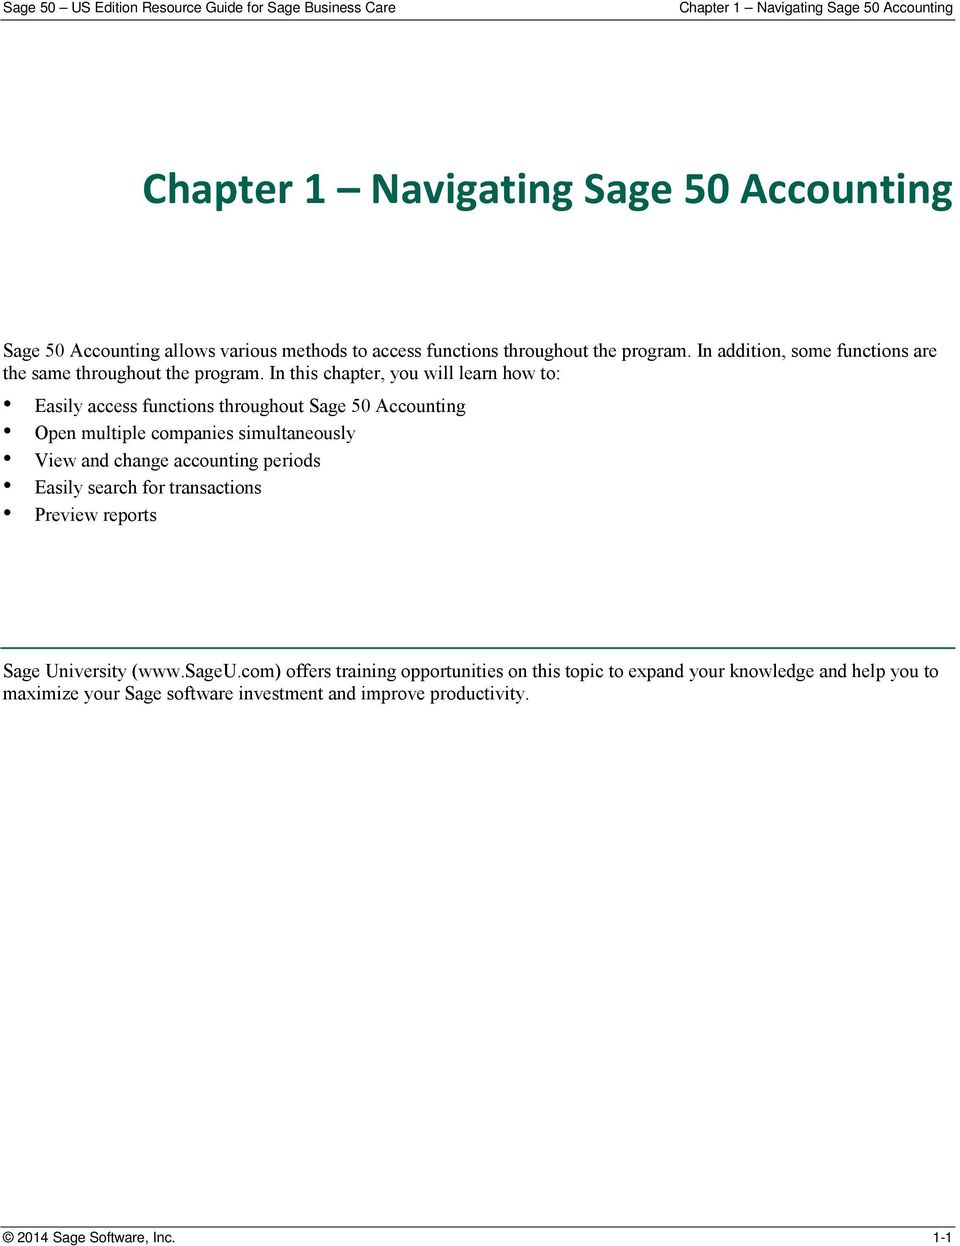 In this chapter, you will learn how to: Easily access functions throughout Sage 50 Accounting Open multiple companies simultaneously View and change accounting periods Easily